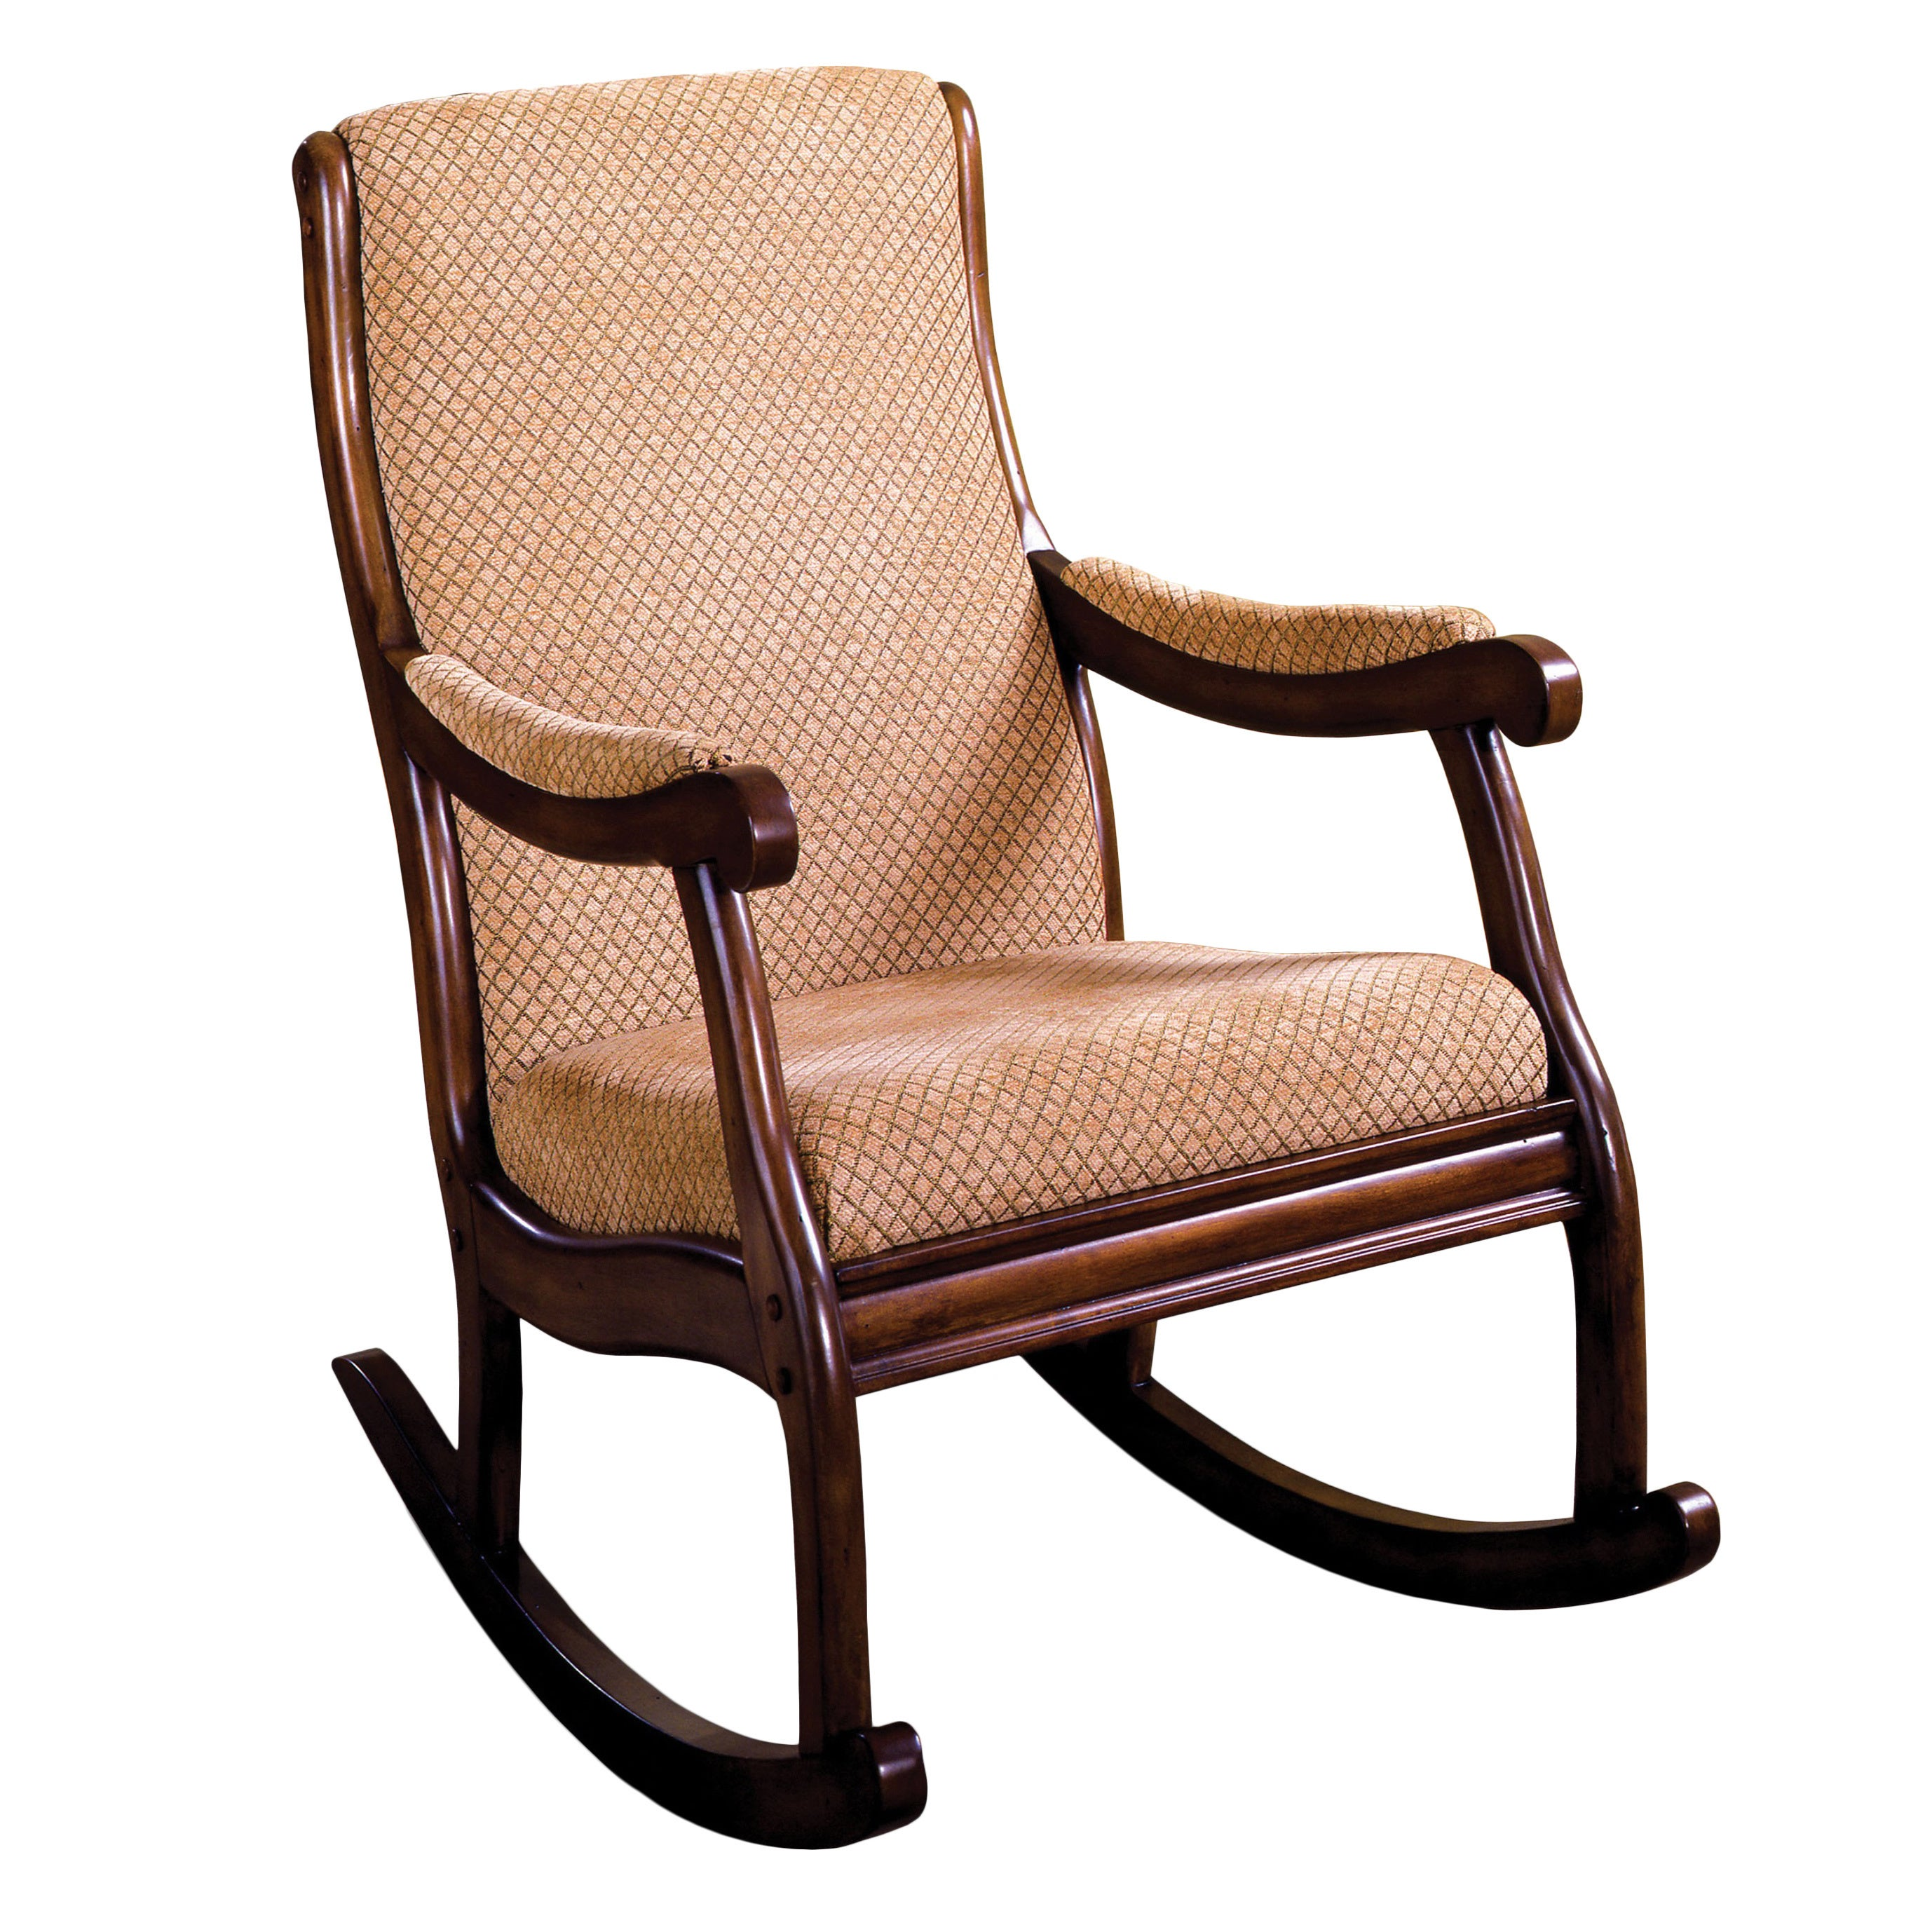 Shop Furniture Of America Antique Warm Oak Finish Wood/Fabric Upholstered Rocking  Chair   Free Shipping Today   Overstock.com   4734115